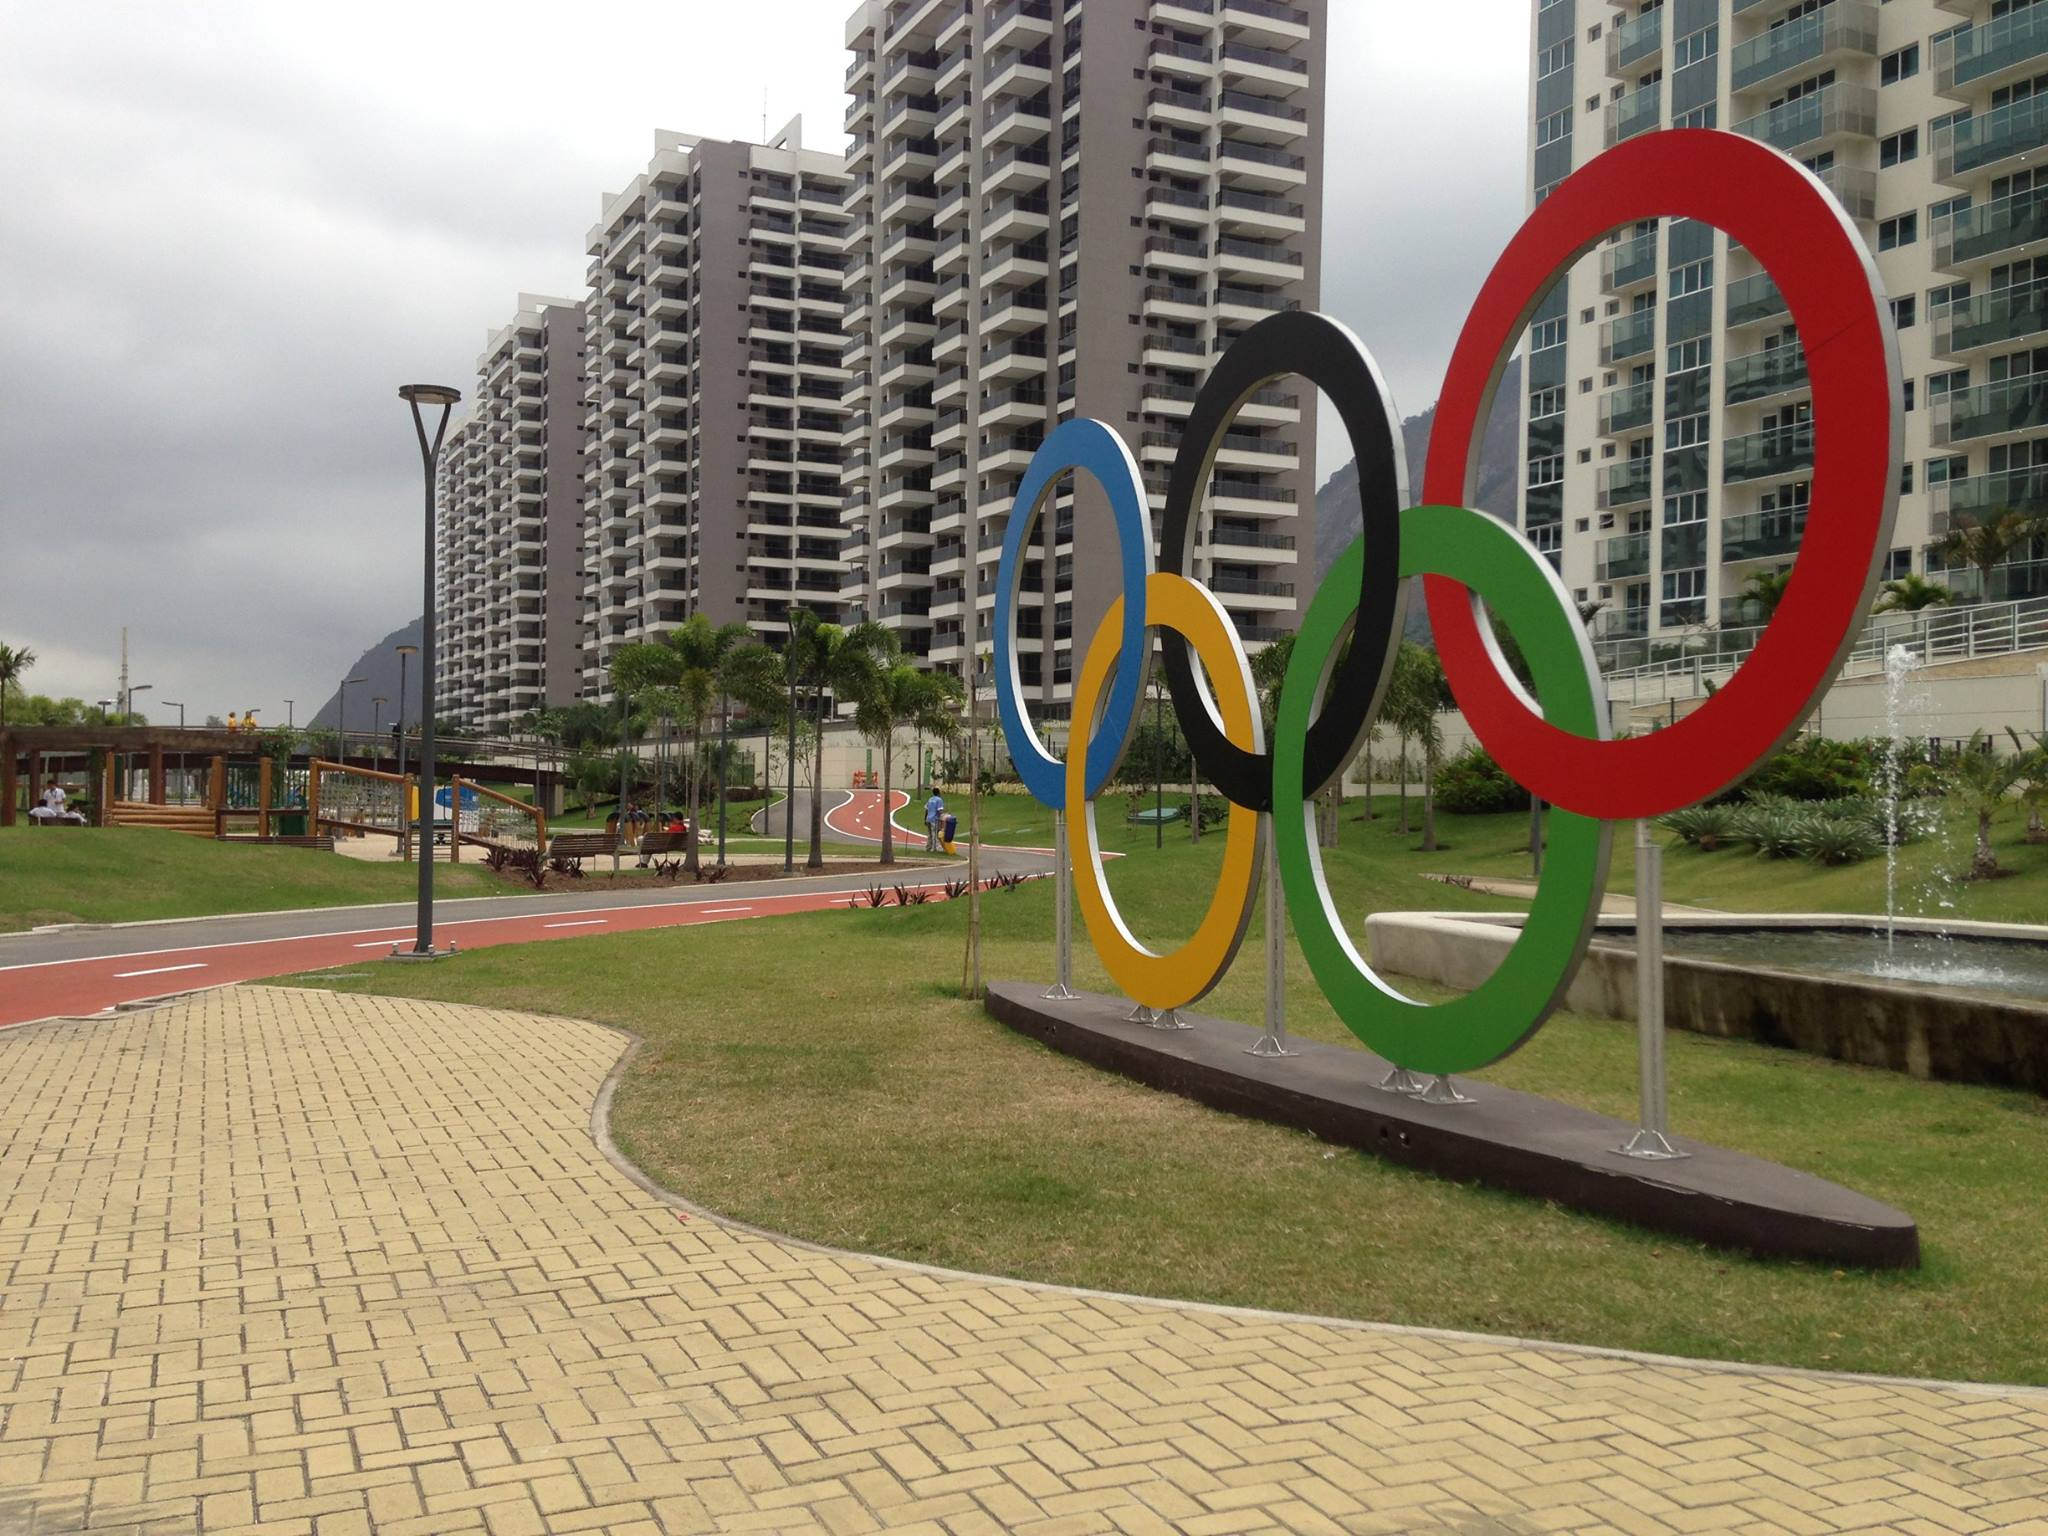 The Olympic Village #Rio2016. Image from Flickr by Mexican Olympic Committee. CC BY NC-ND-2.0